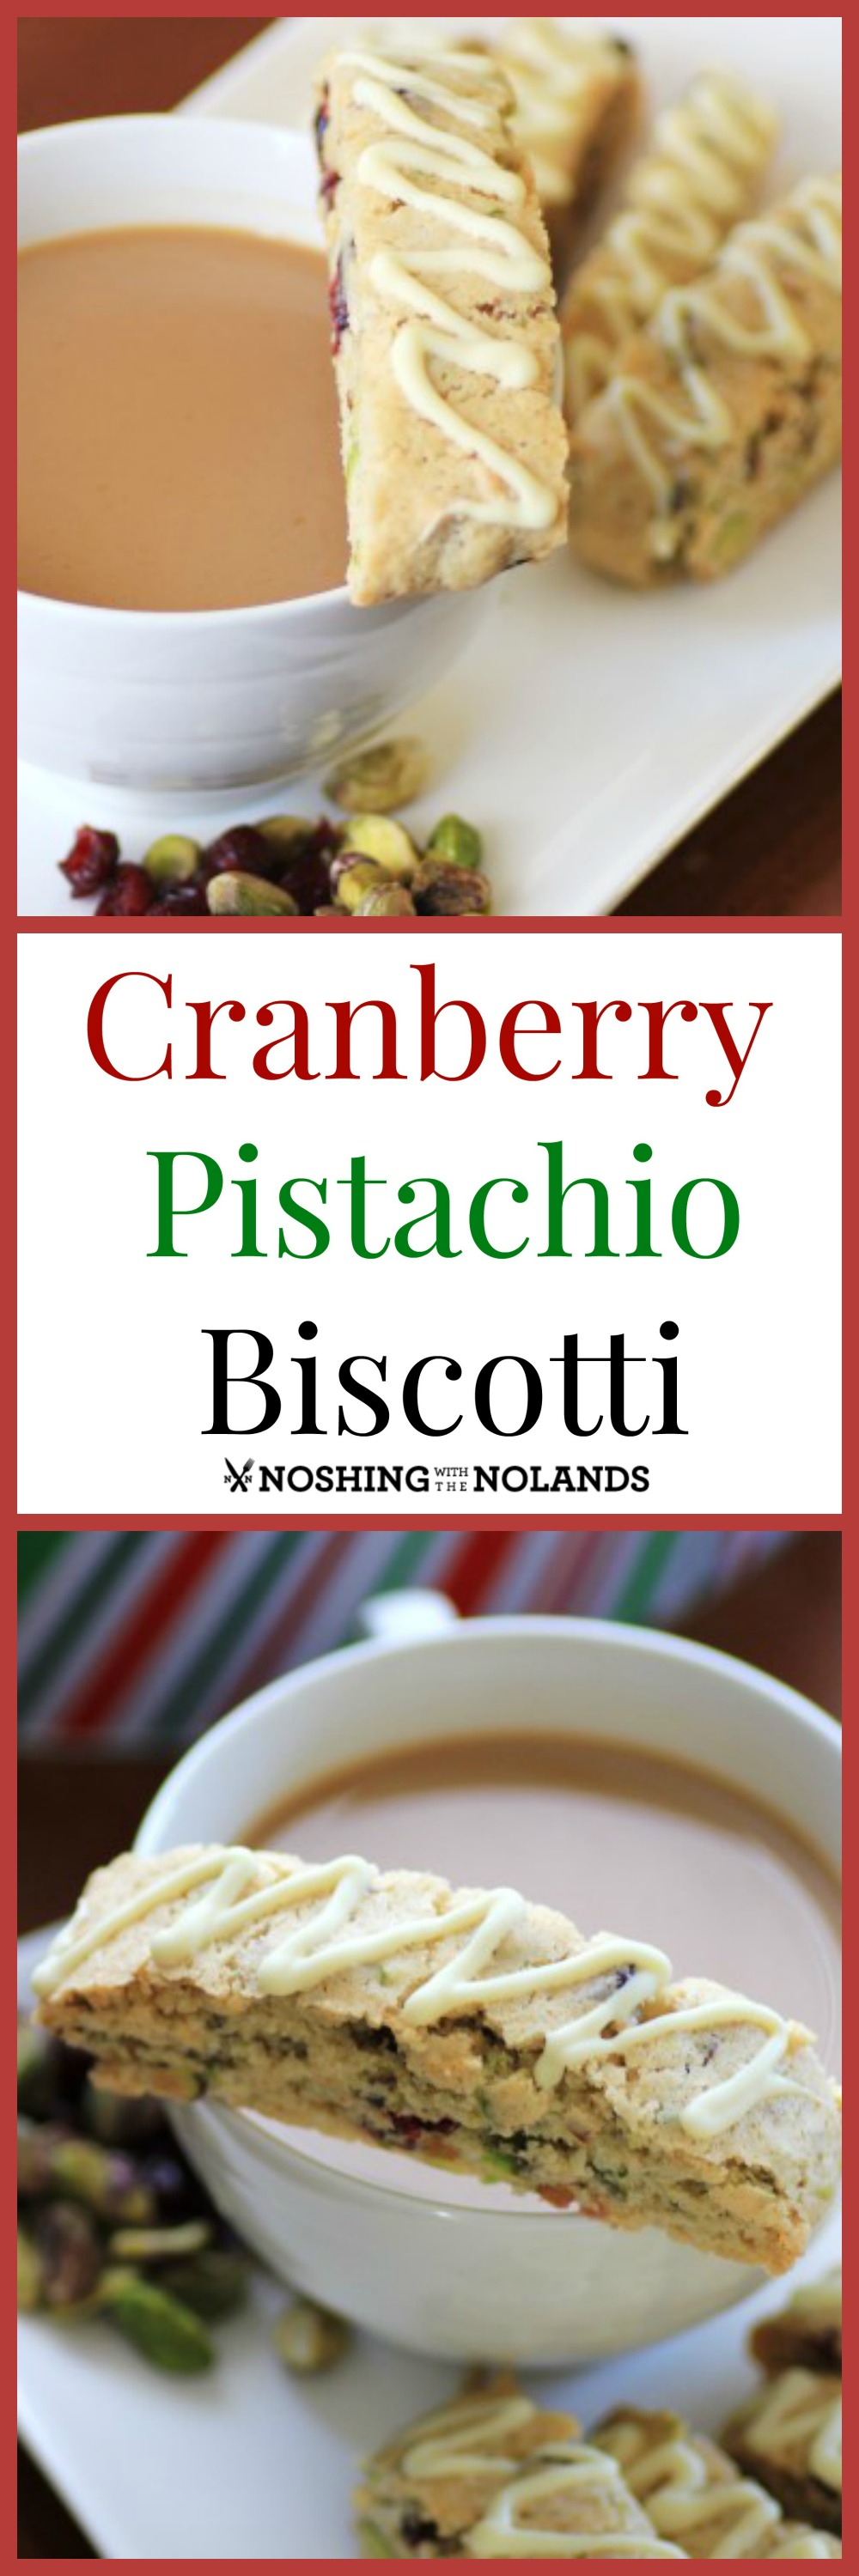 Cranberry Pistachio Biscotti #ChristmasWeek #Freund